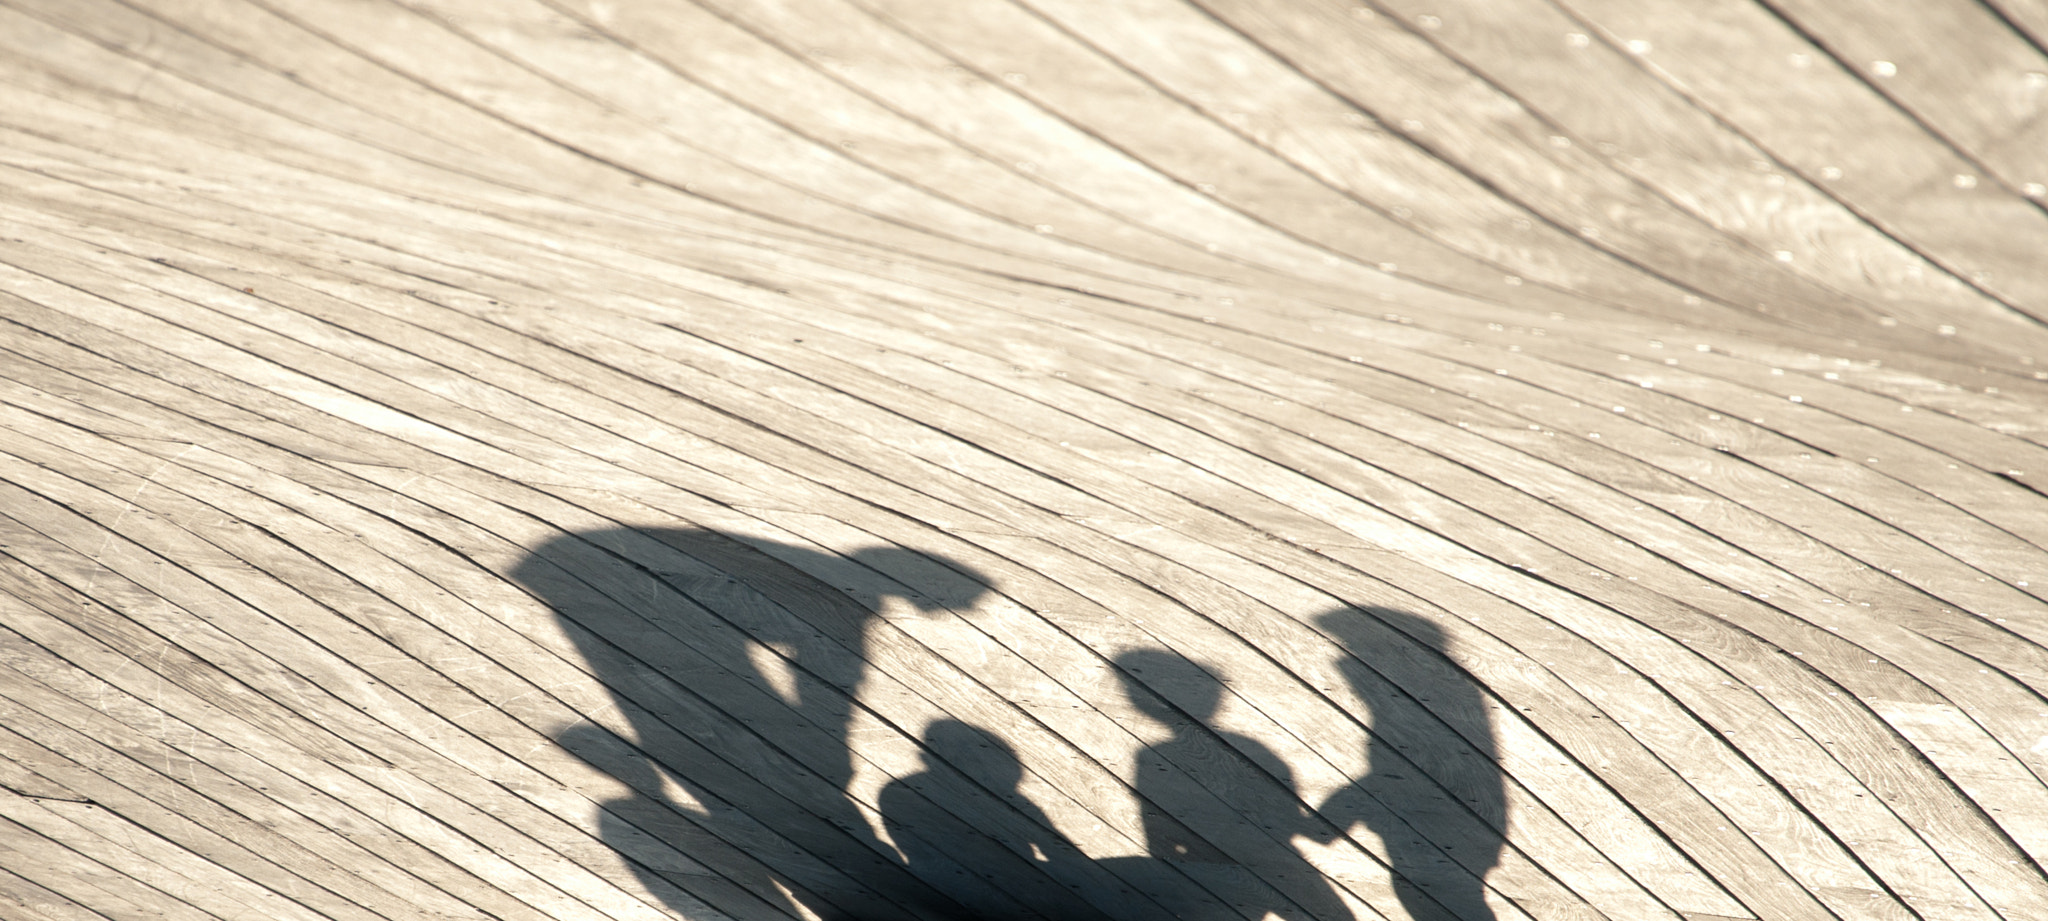 Photograph Shadows by Stav Laufer on 500px